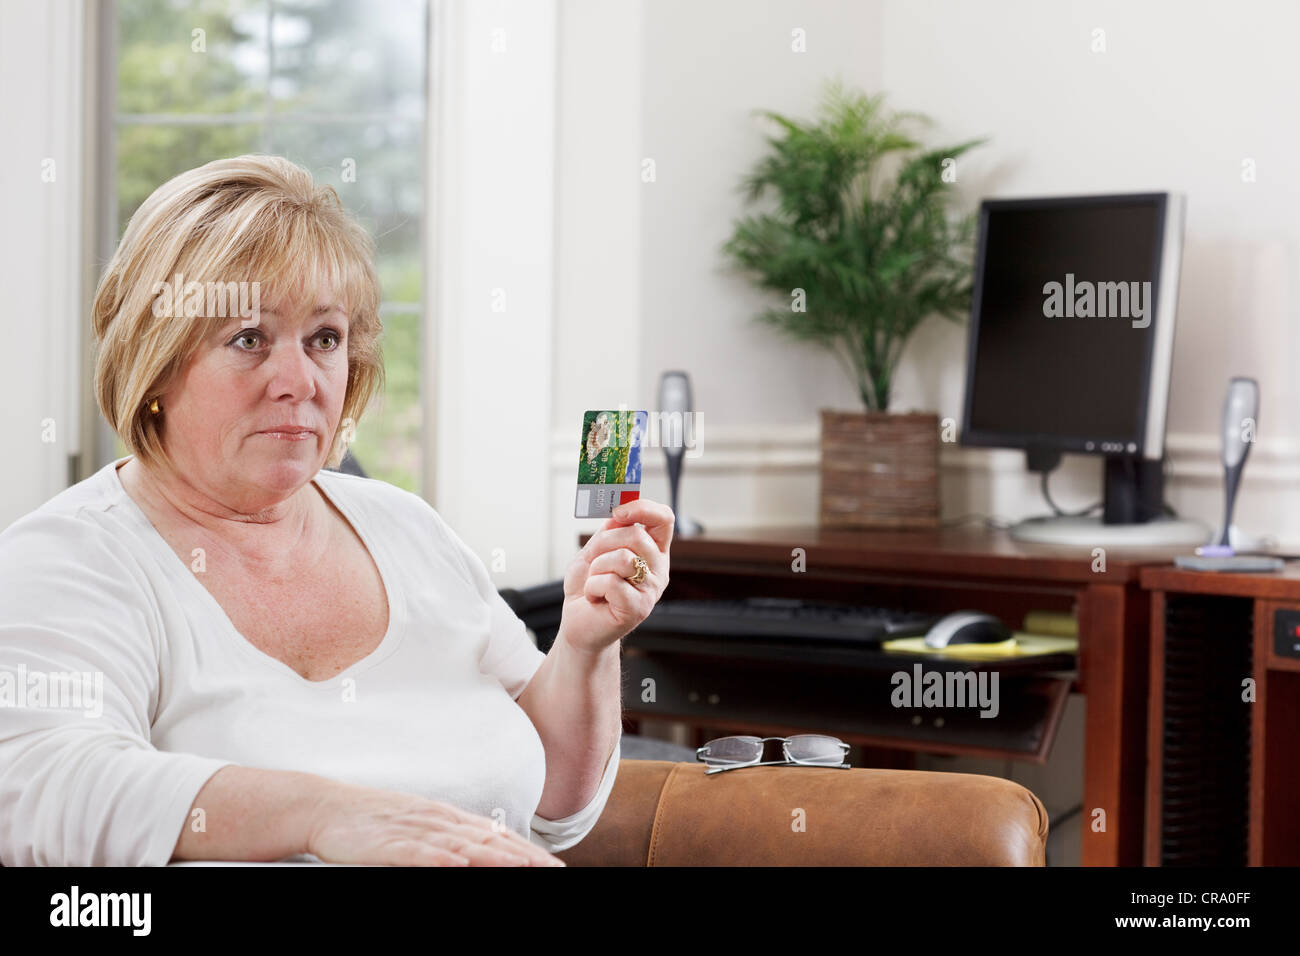 Mature woman holds a credit card and stares intently - Stock Image